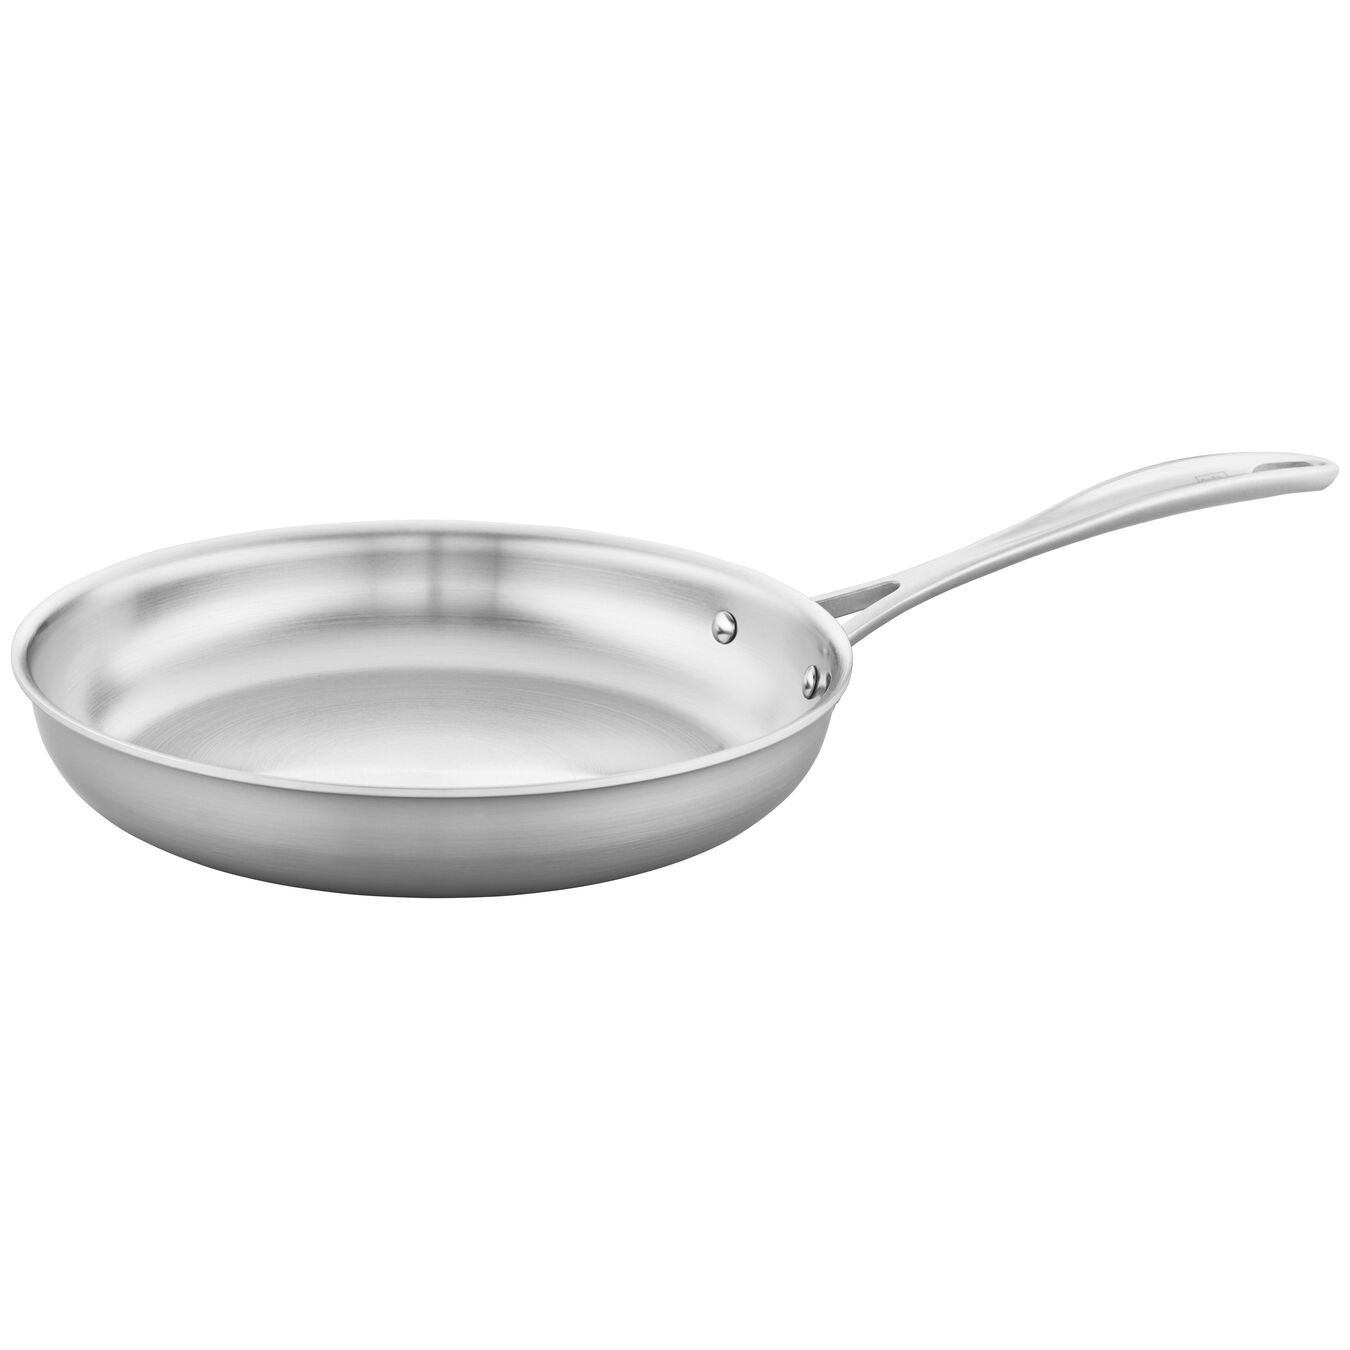 3 Ply, 10-inch, 18/10 Stainless Steel, Frying pan,,large 2